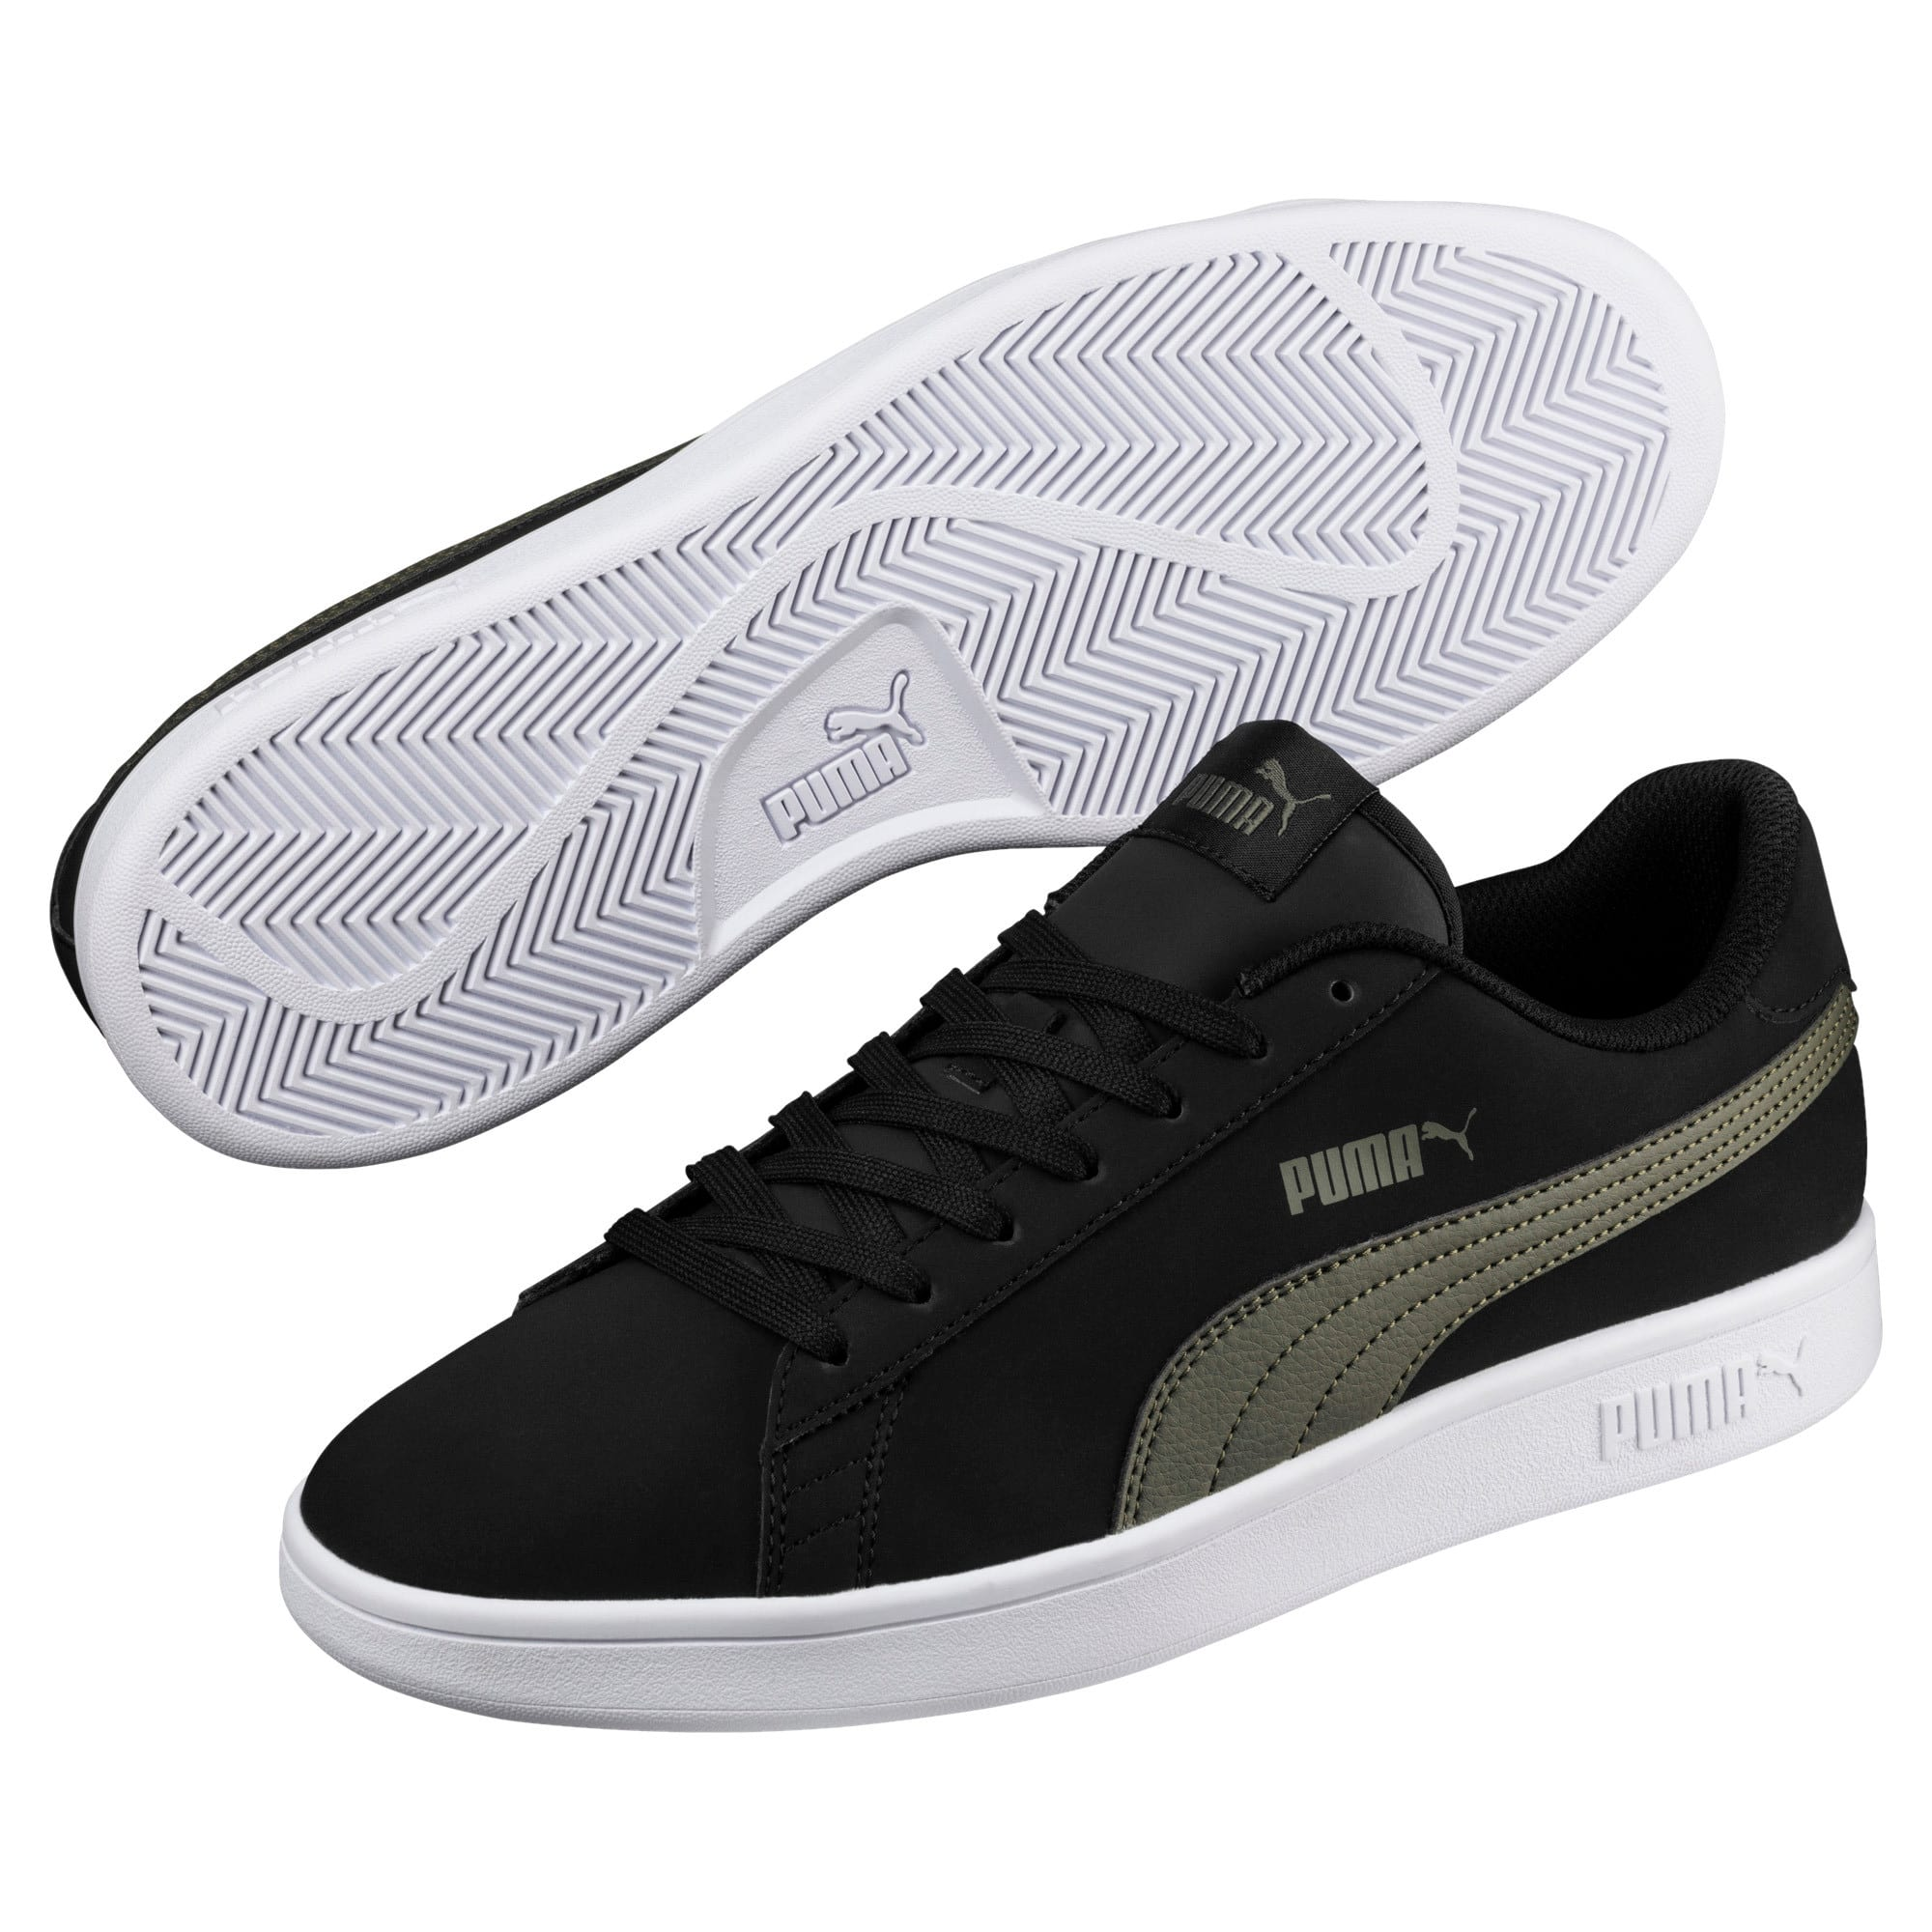 Thumbnail 2 of Smash v2 Buck Sneaker, Puma Black-Forest Night, medium